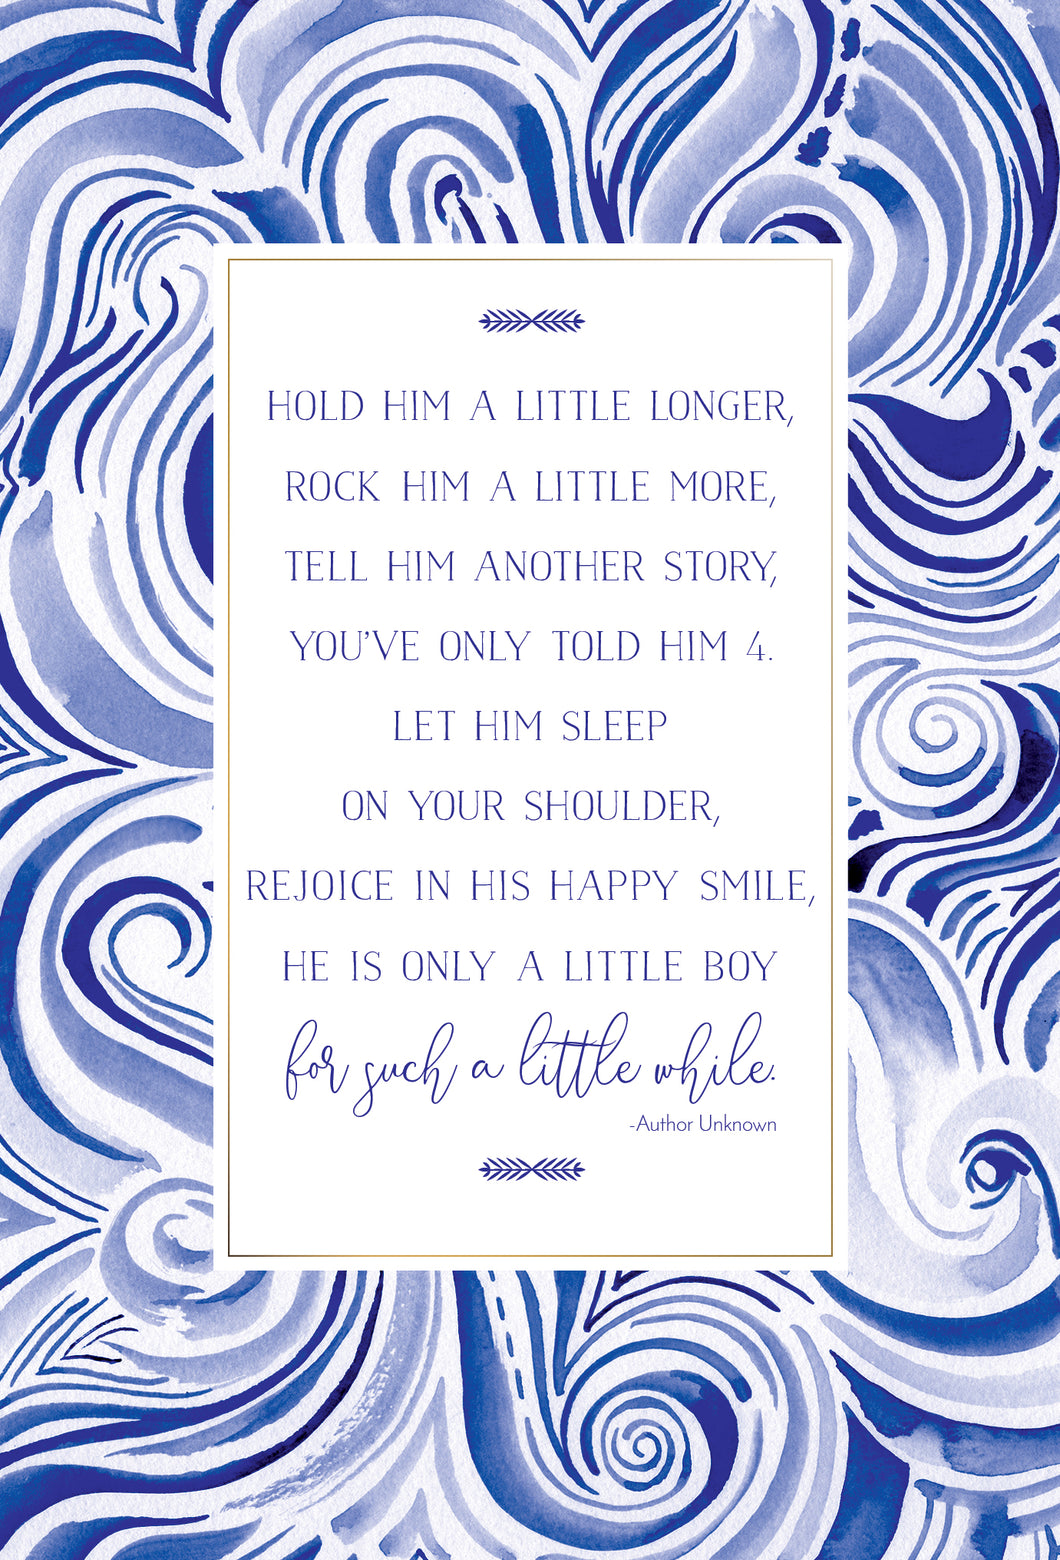 Baby Card Boy with Poem Hold Him a Little Longer Happy Buddha - Cardmore